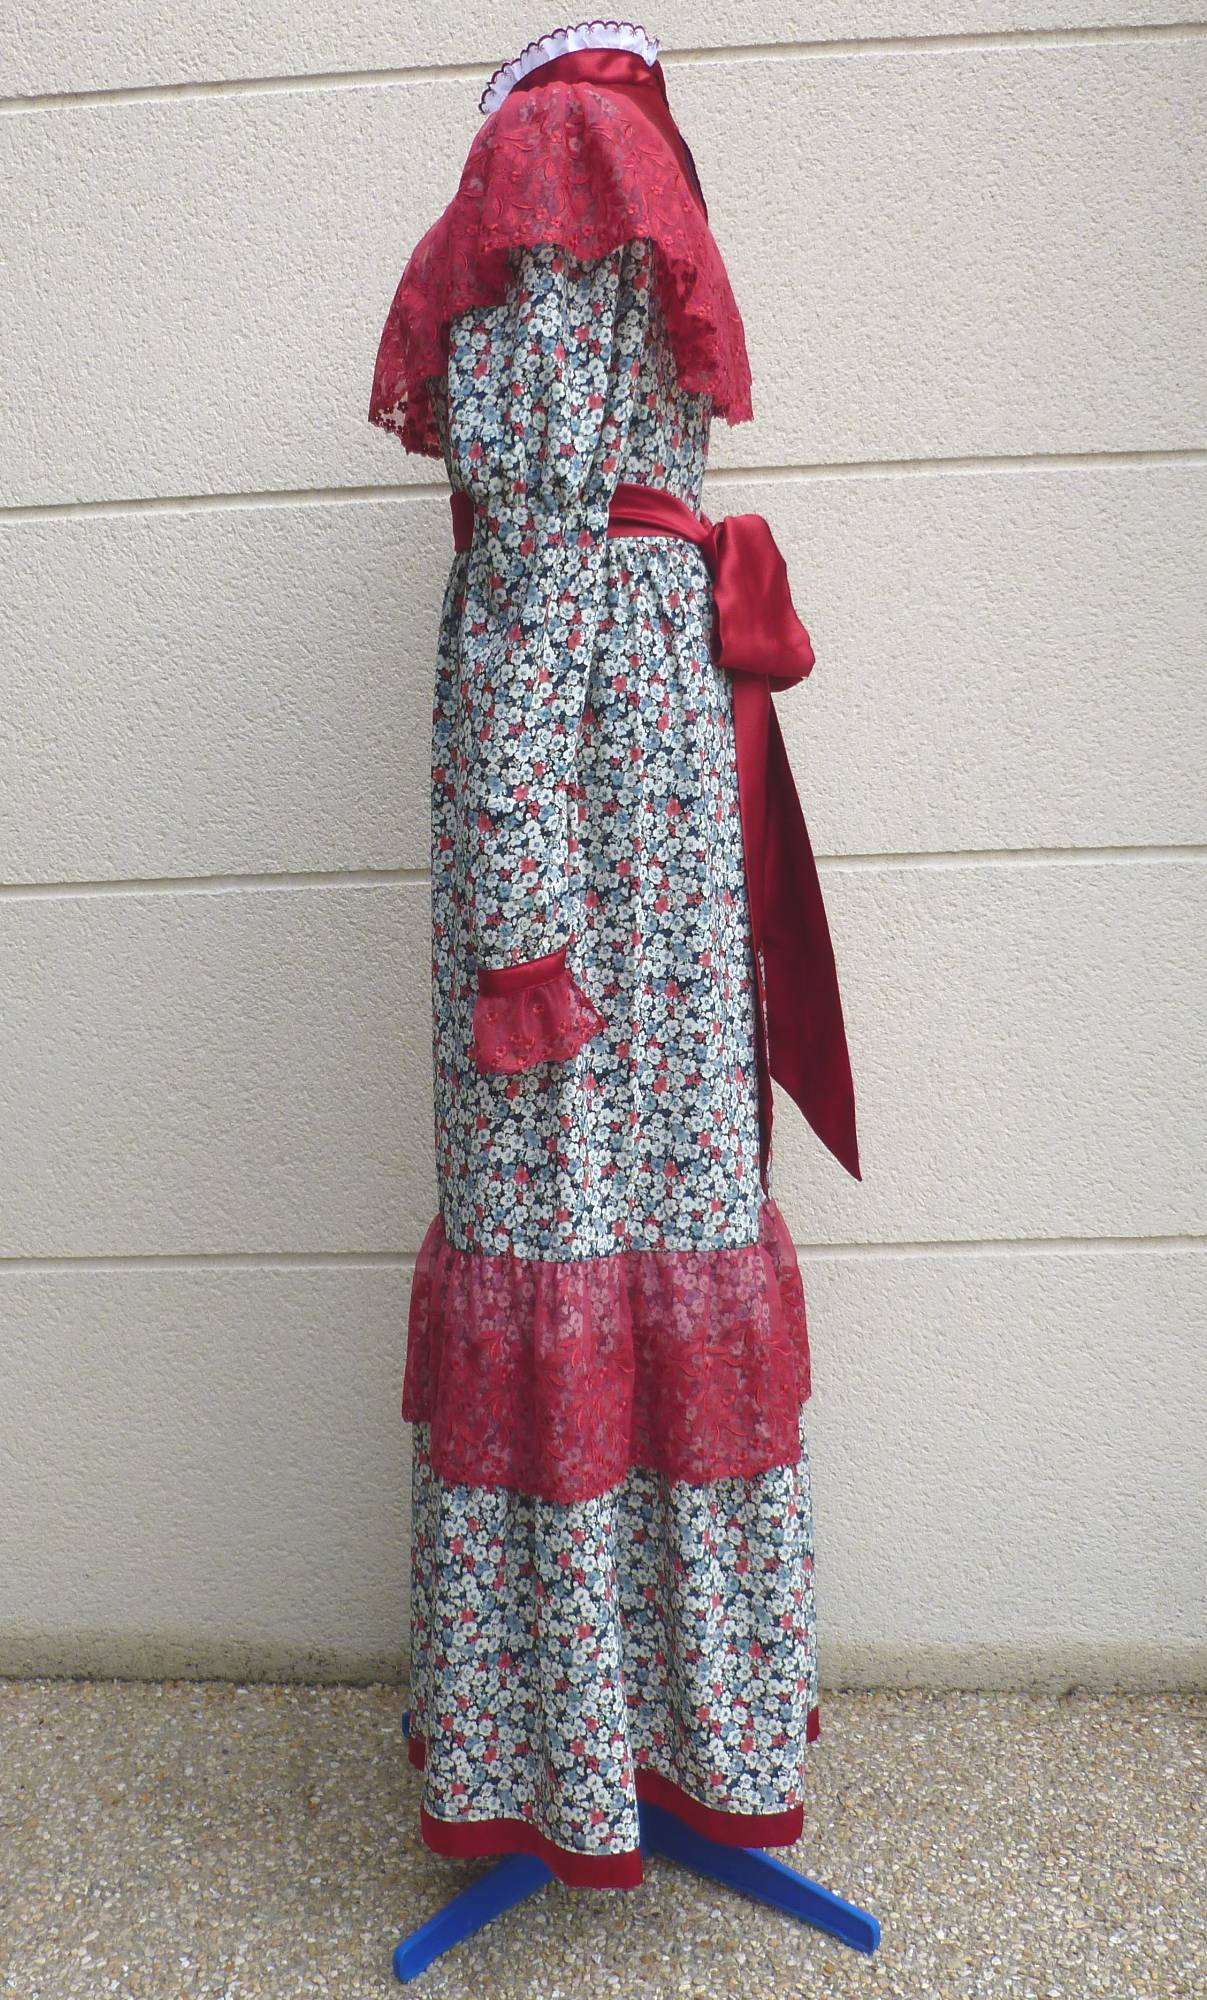 Robe-1900-taille-42-2